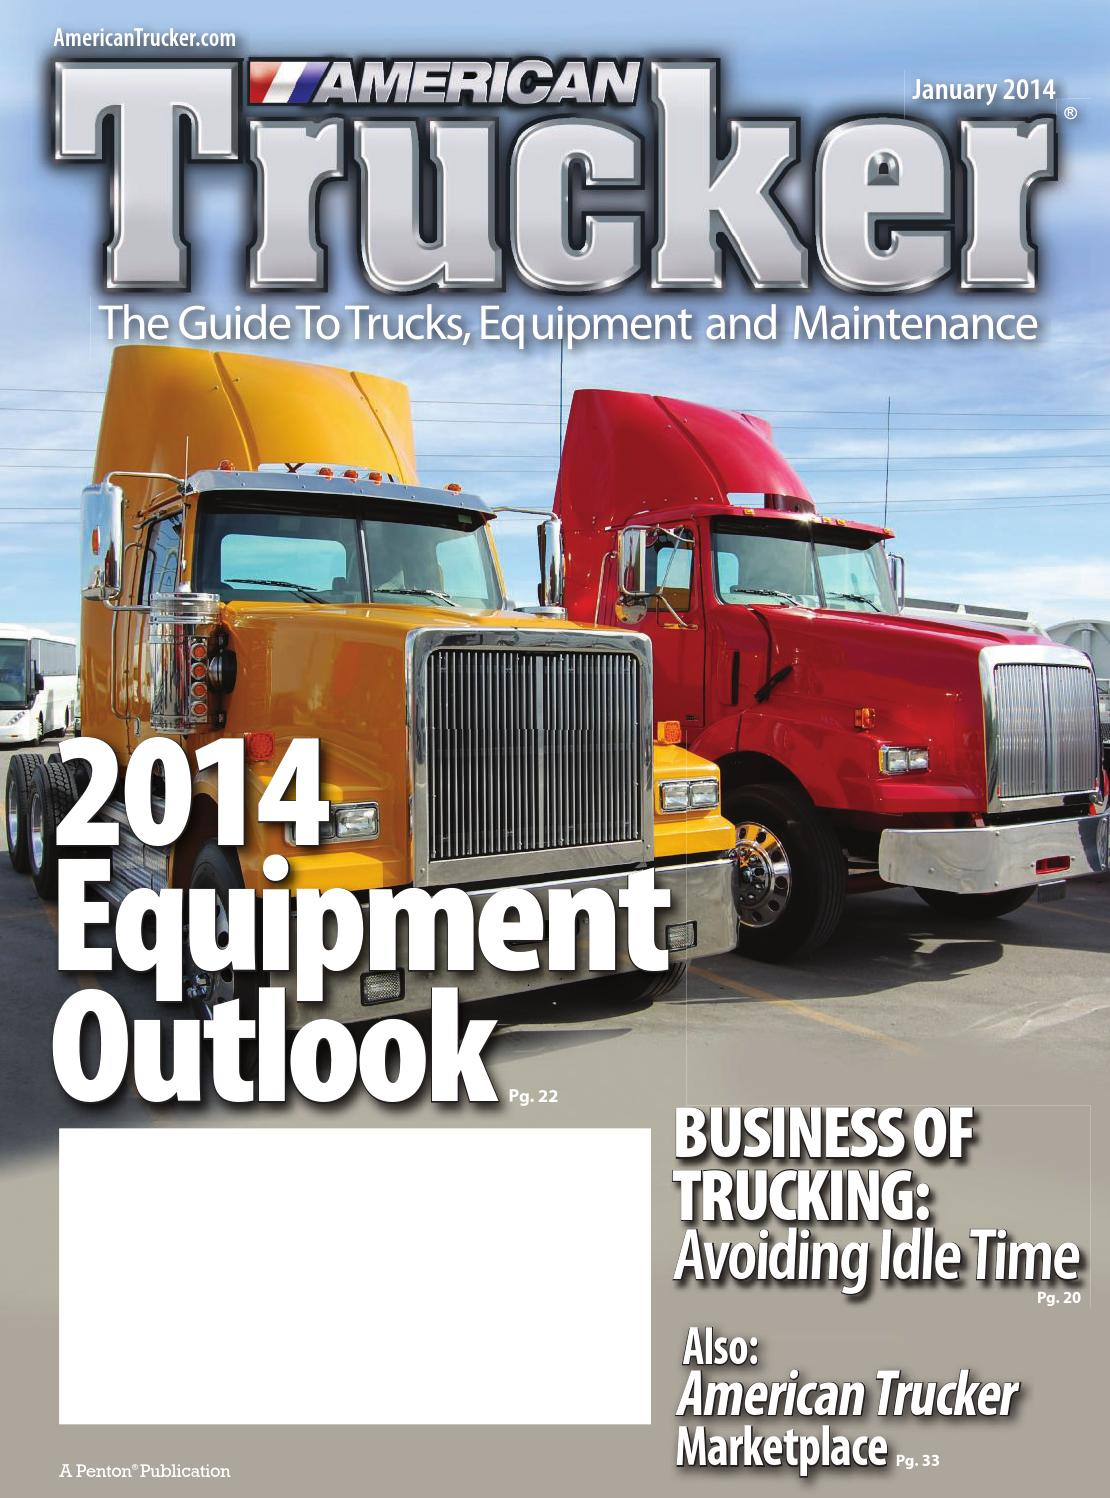 american trucker magazine - photo #10